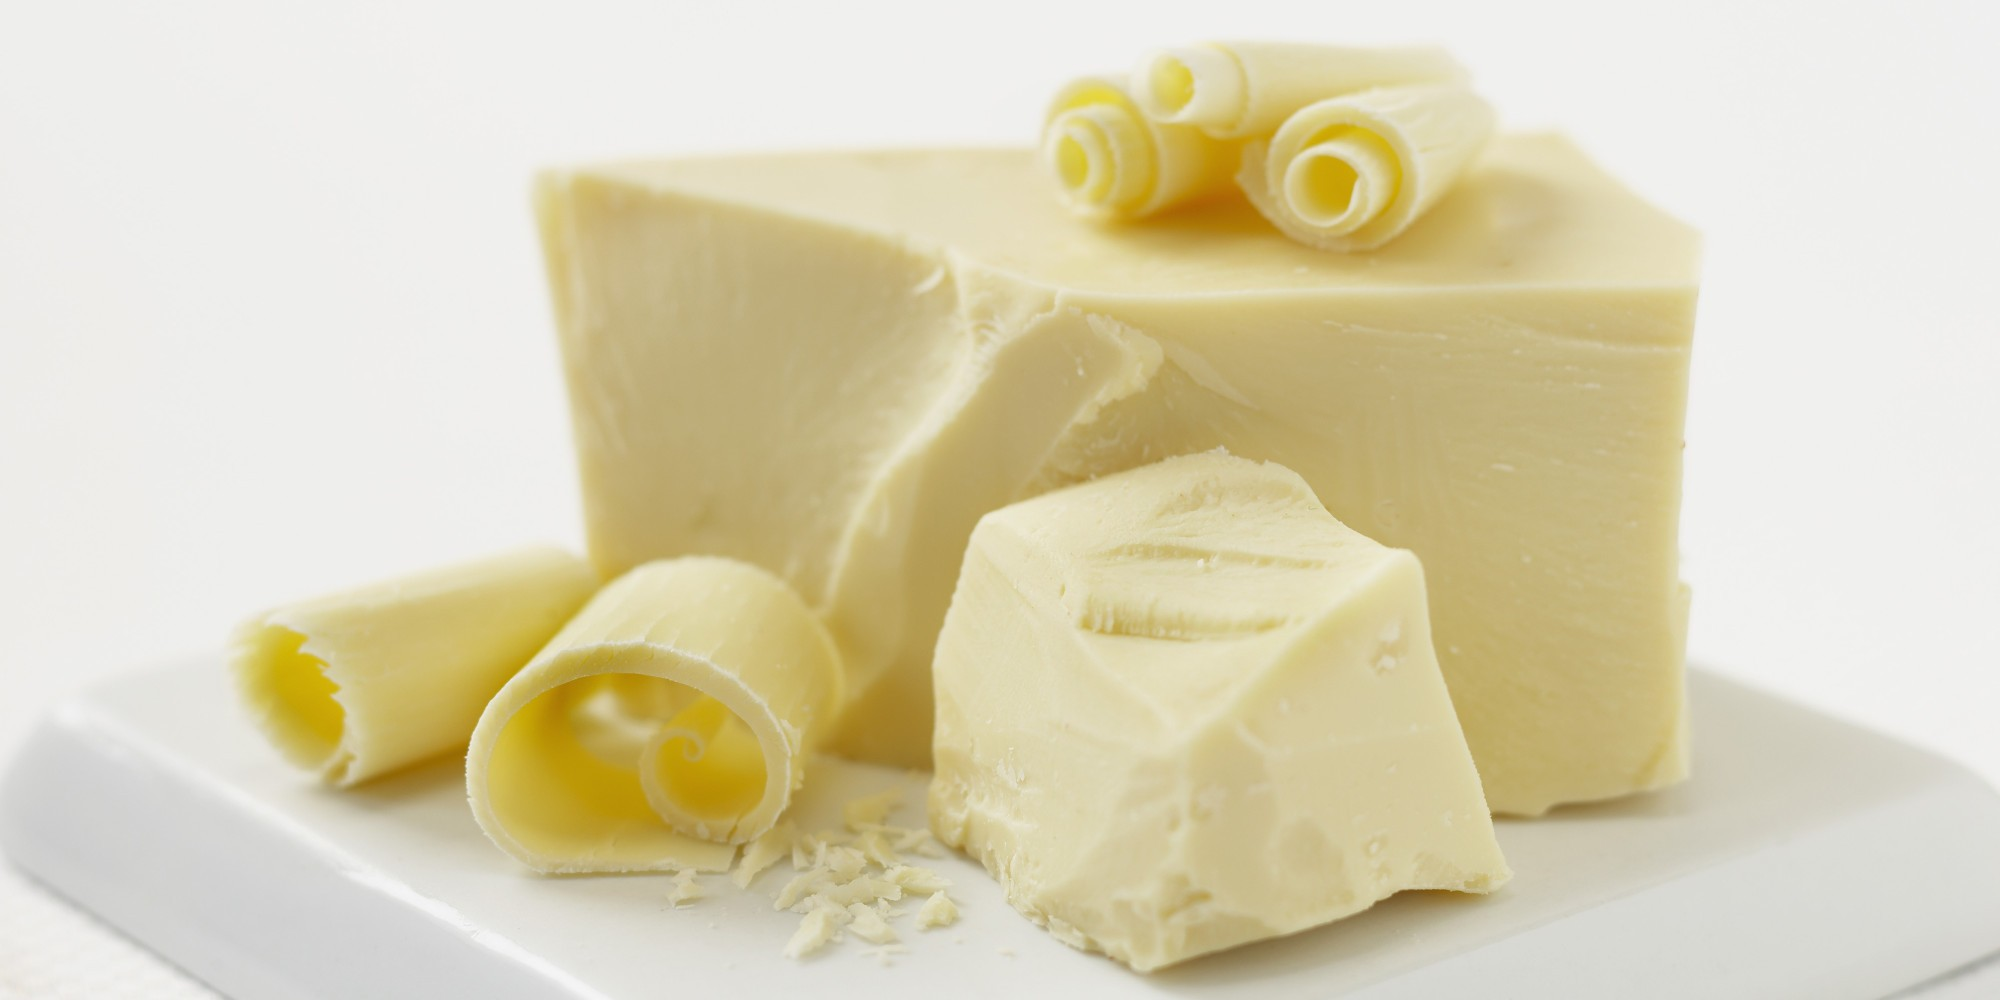 11 Things You Didn't Know About White Chocolate